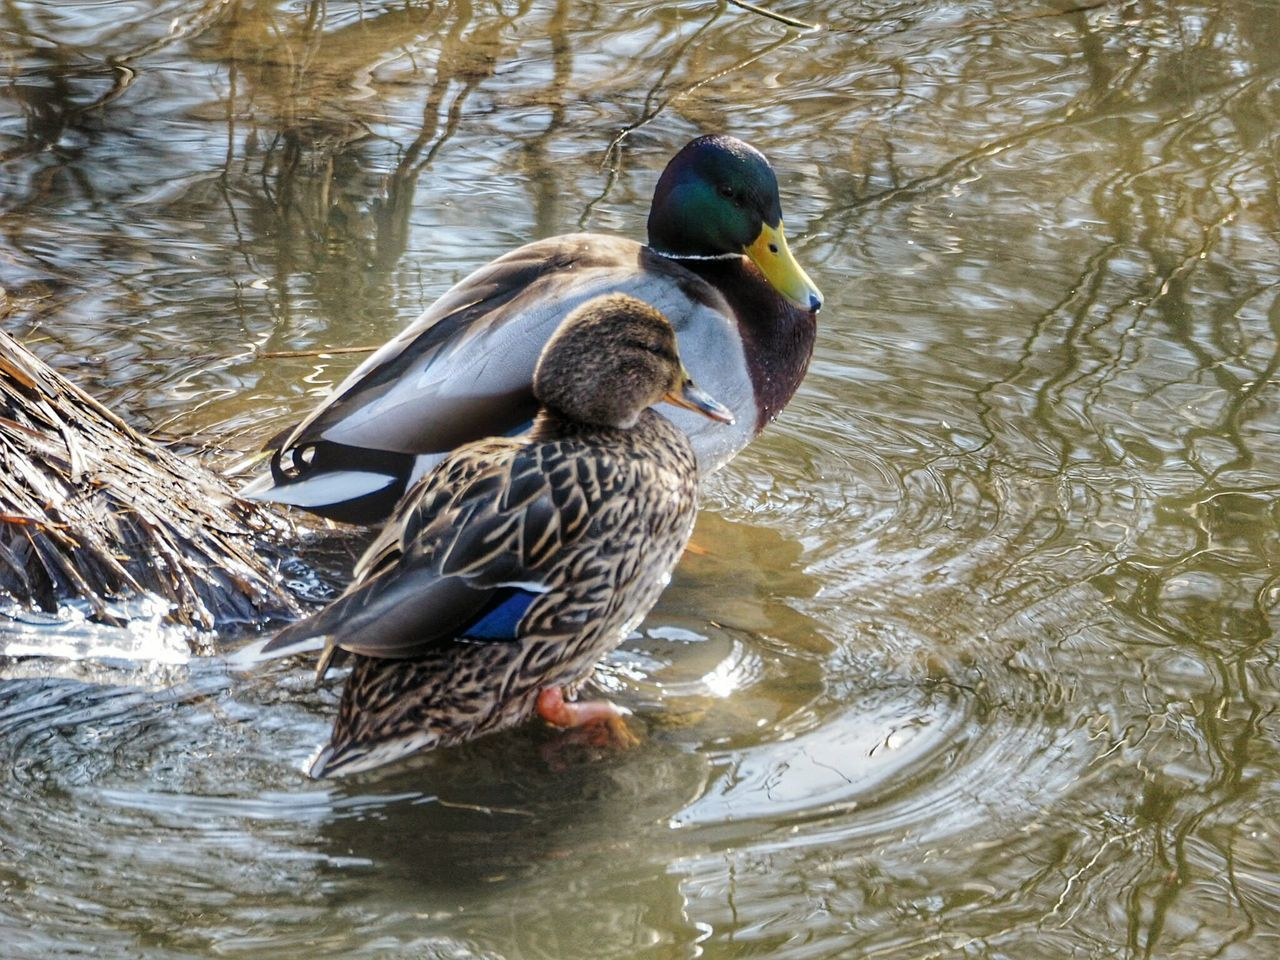 Bird Animal Themes Animals In The Wild Water Animal Wildlife Duck Nature Swimming Water Bird Beauty In Nature Nature Winter Nature Outside Sea Bird Animals In The Wild Ducks In Water Duck Couple